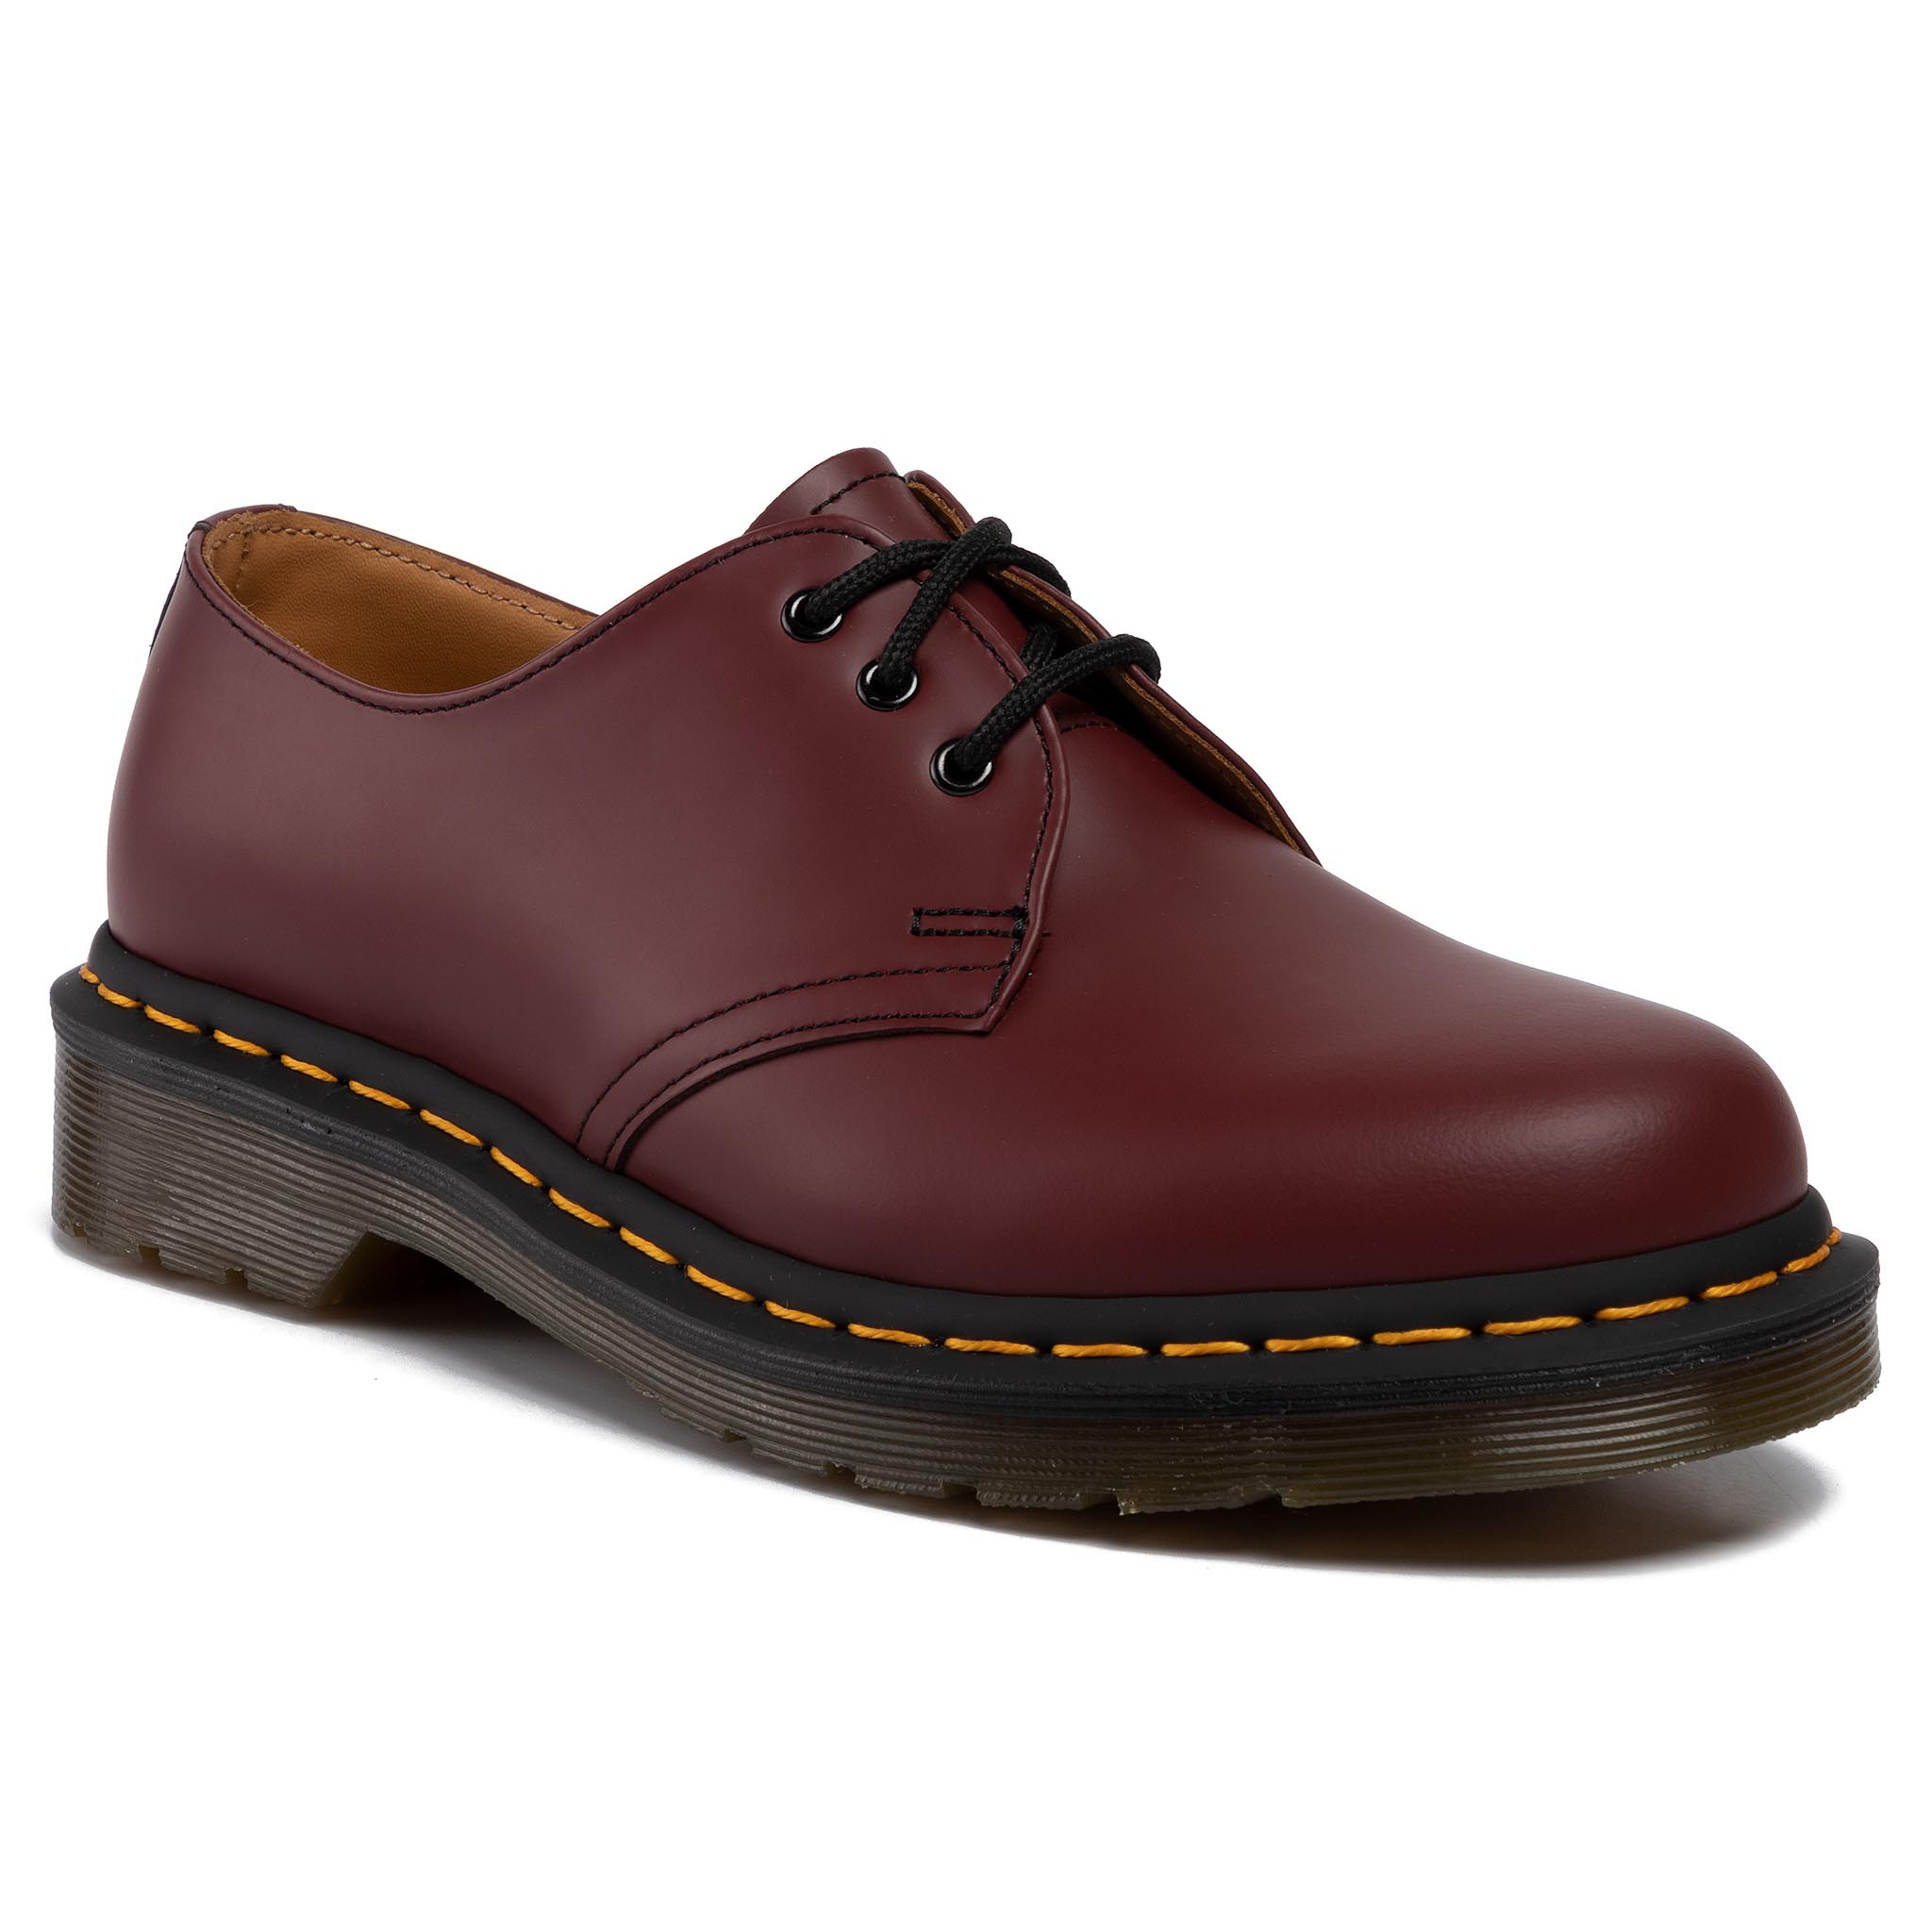 Batai DR. MARTENS - 1461 11838600 Cheery Red/Smooth